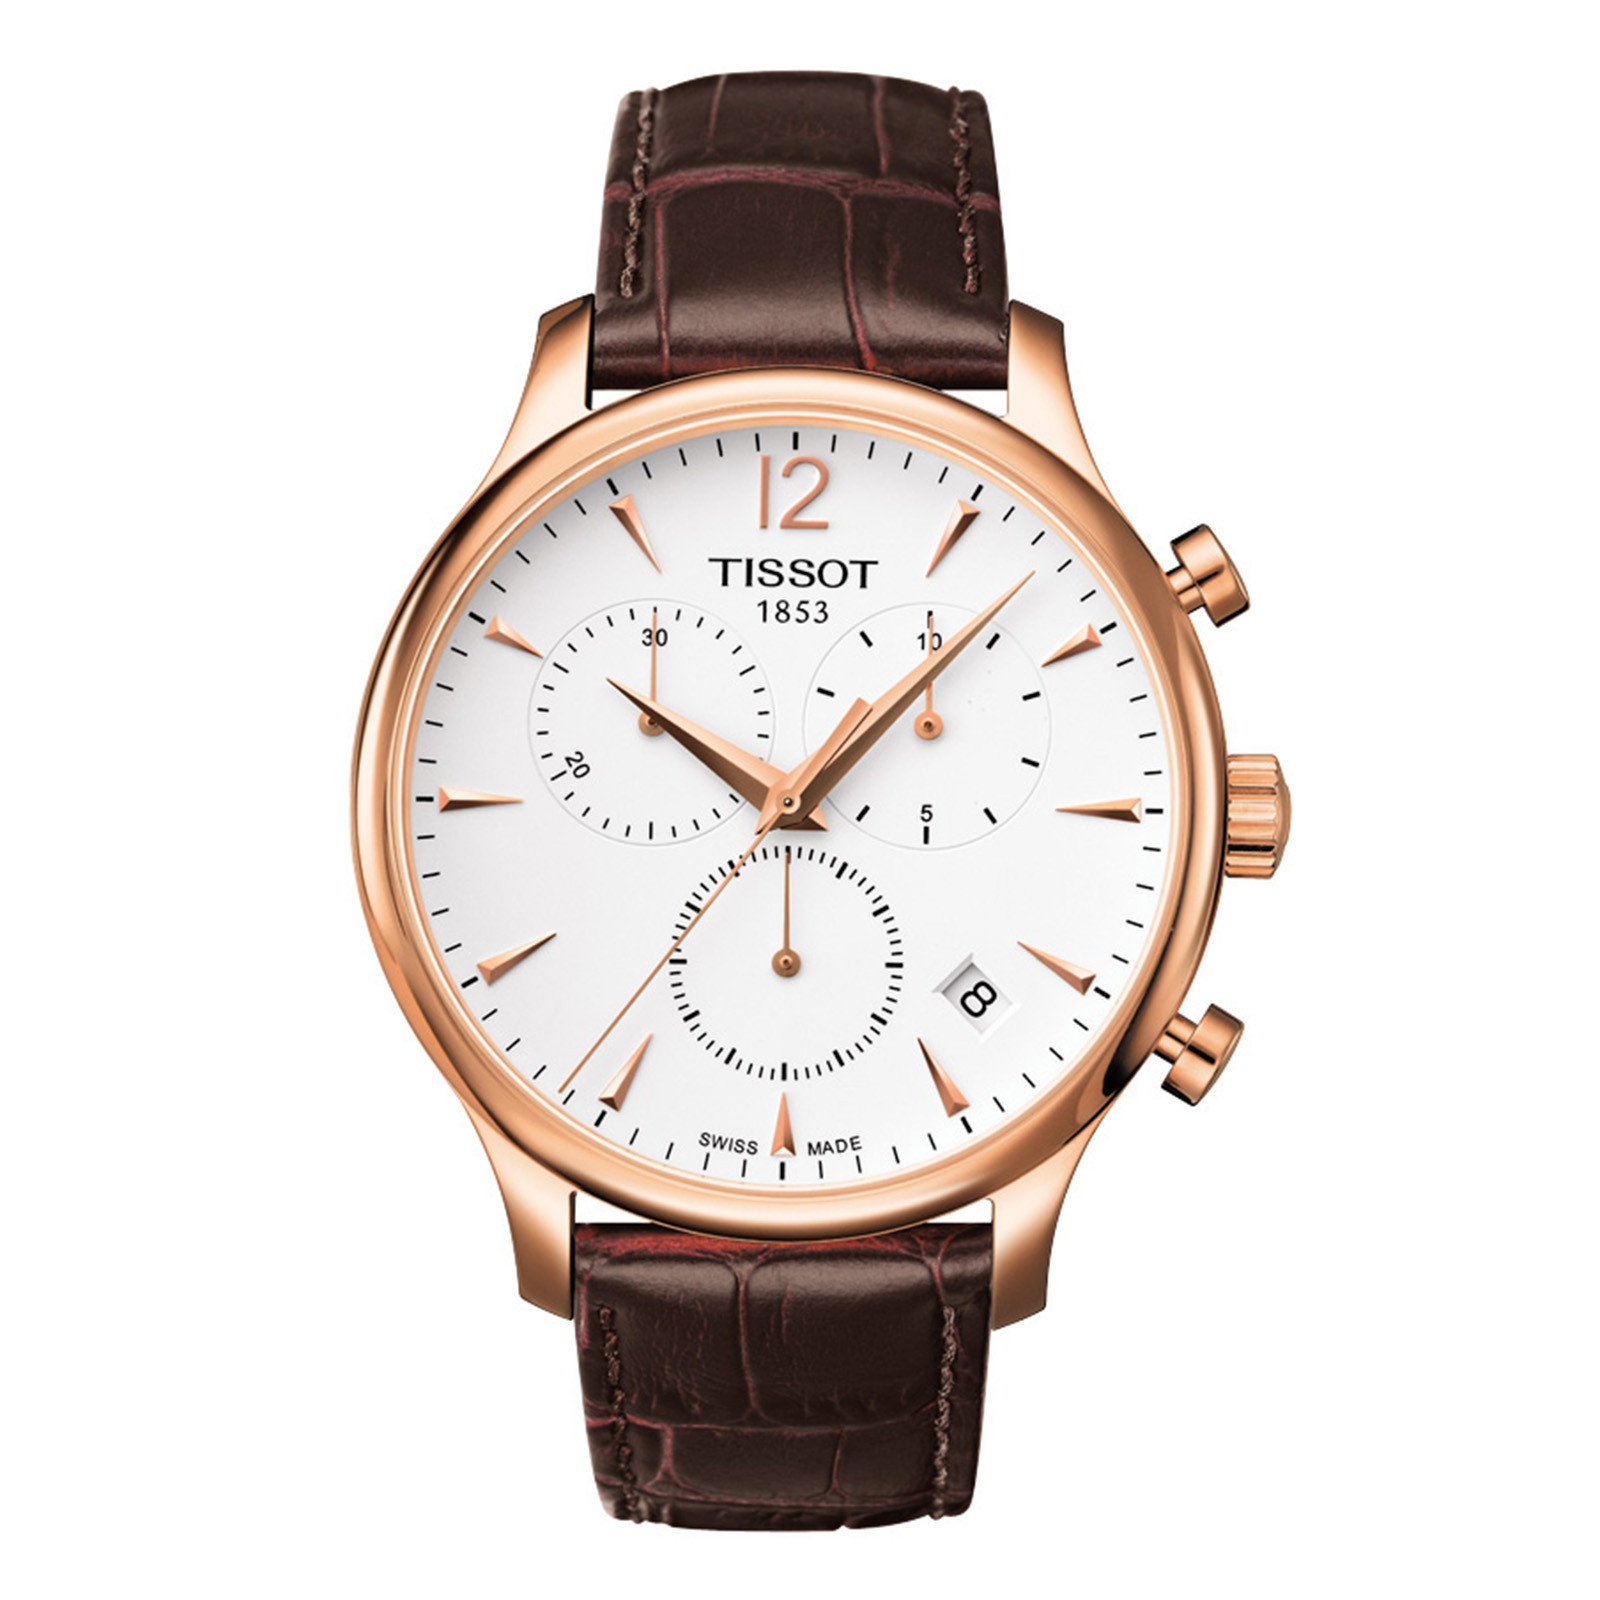 New Men's Tissot Tradition Classic Chronograph